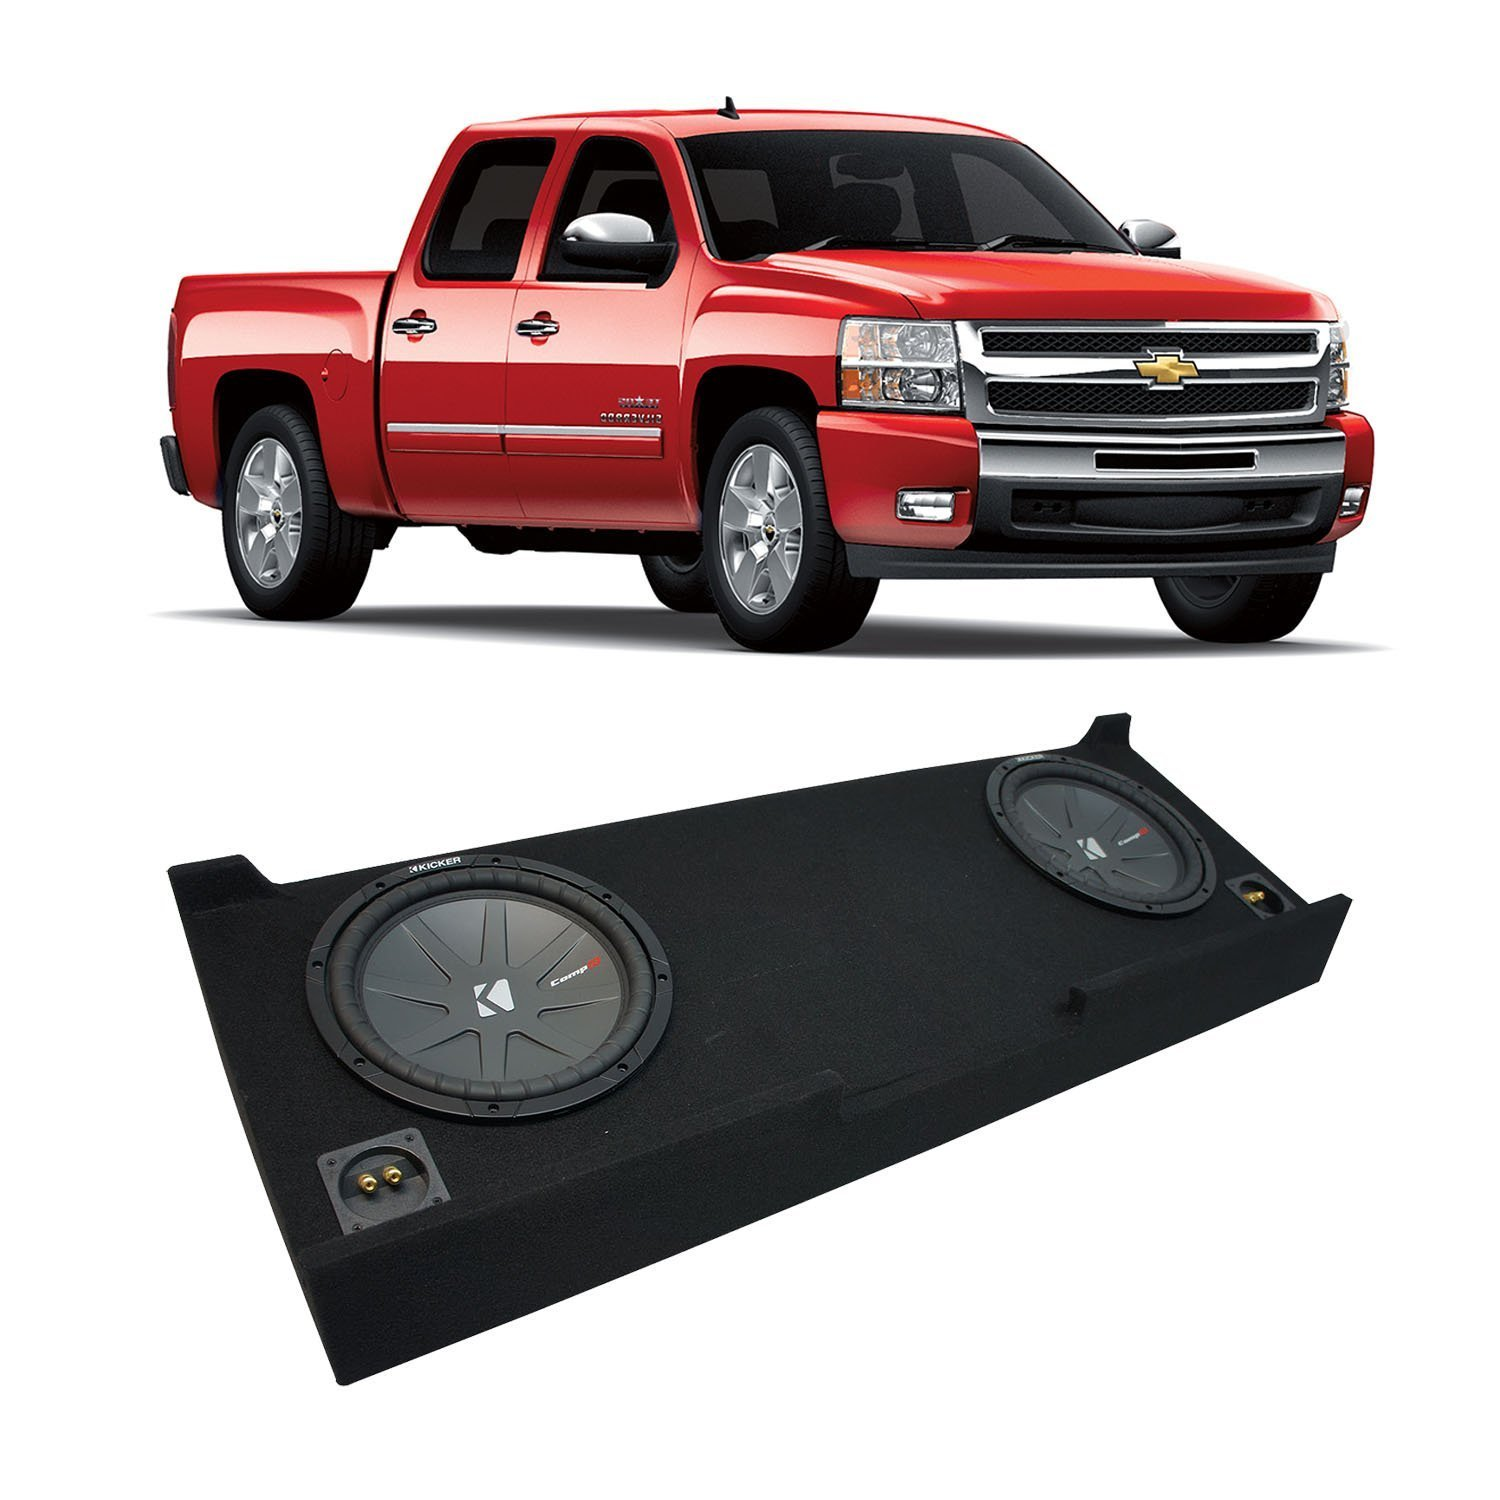 "2007-2013 Chevy Silverado Crew Cab Truck Kicker CompR CWR10 Dual 10"" Sub Box Enclosure - Final 2 Ohm"